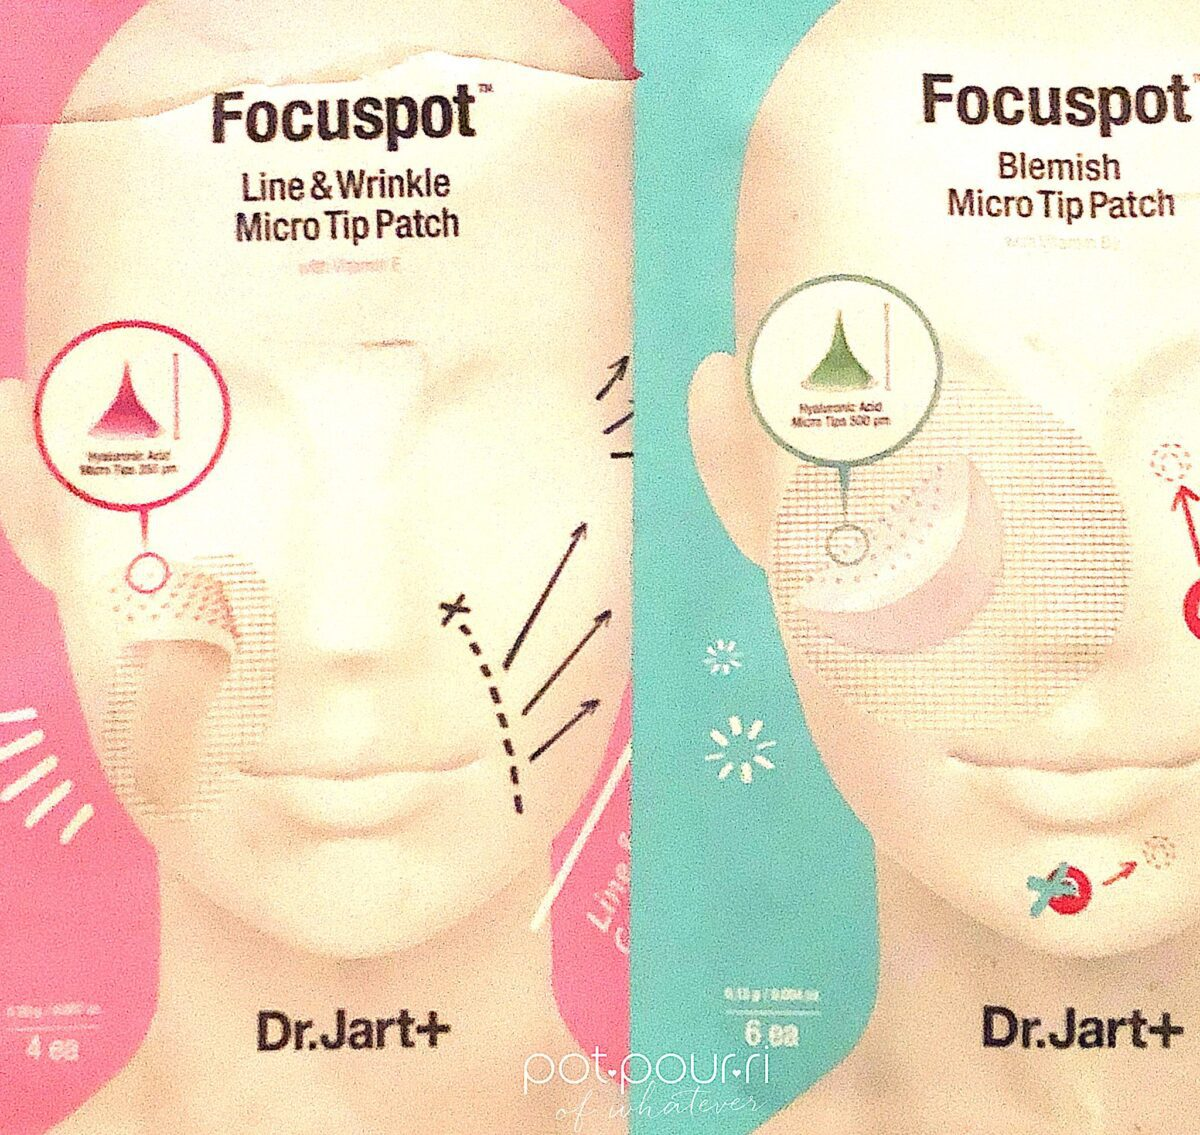 DR JART MICRO-TIP PATCH POUCH-PACKAGING